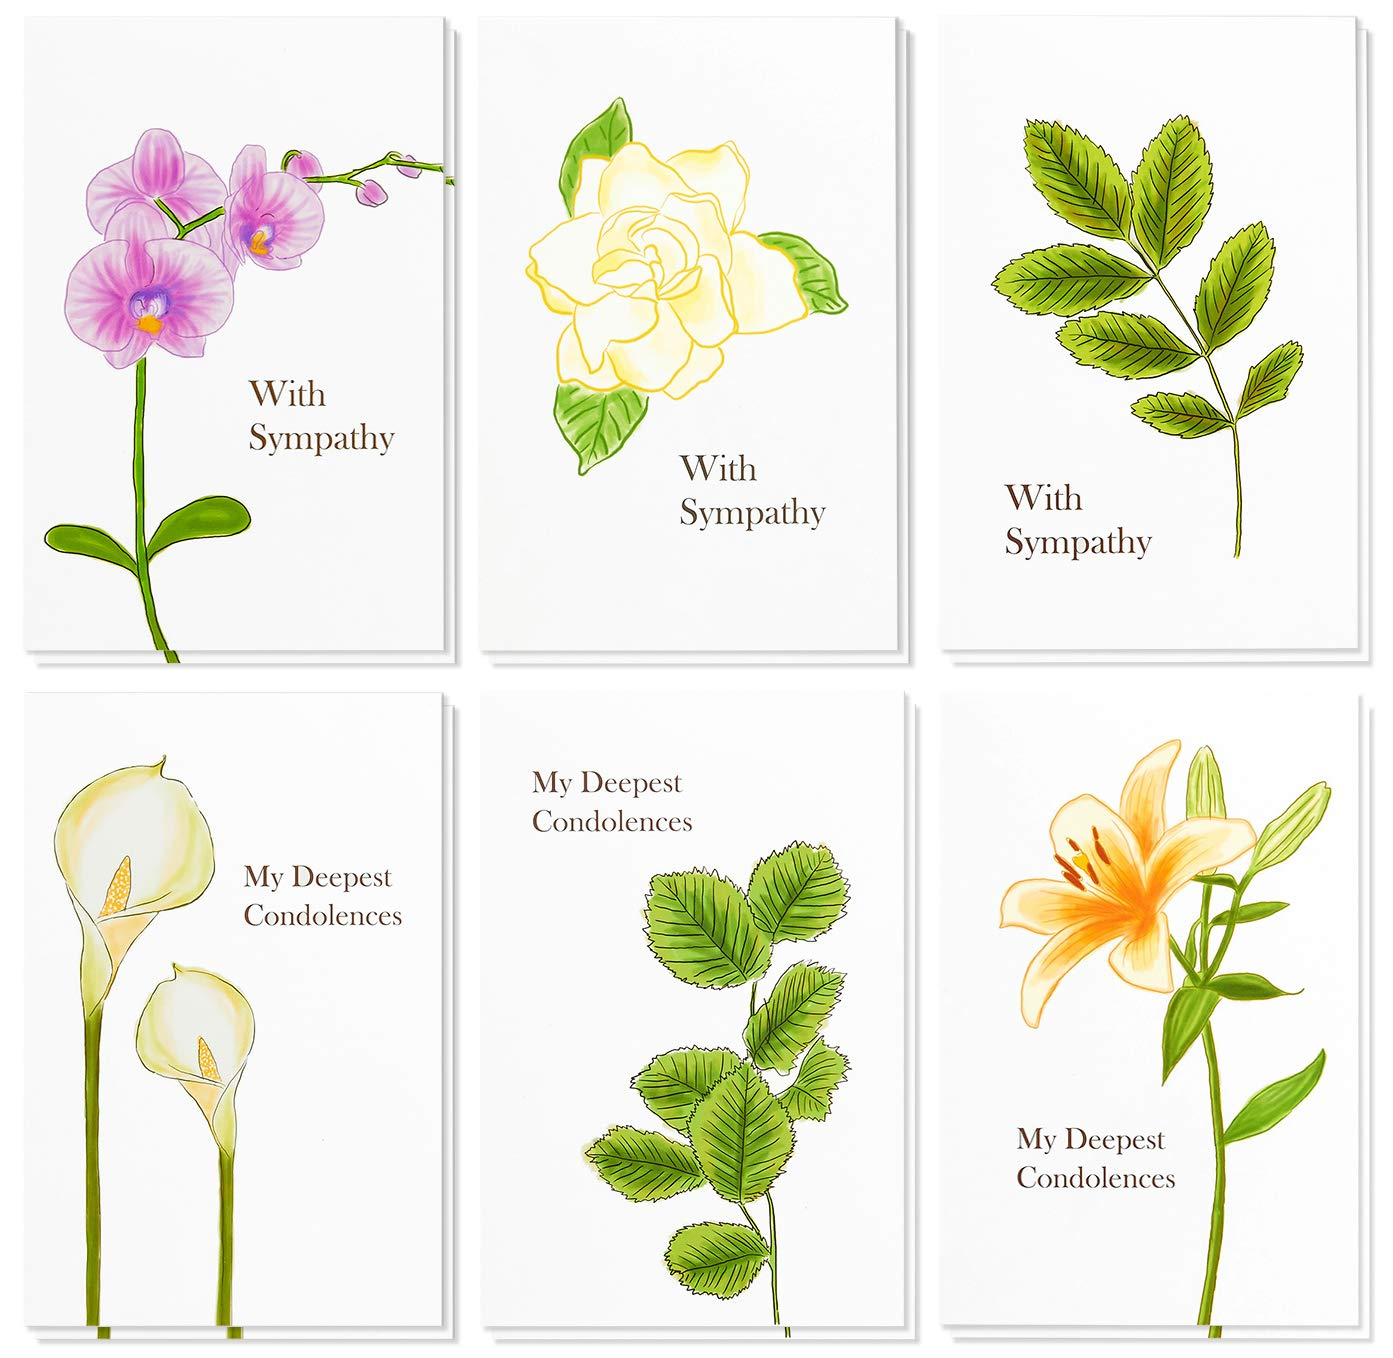 48 Pack Sympathy Greeting Cards Bulk Box Set 6 Classy Floral and Foliage Designs with Sentiments, Envelopes Included, 4 x 6 Inches Best Paper Greetings